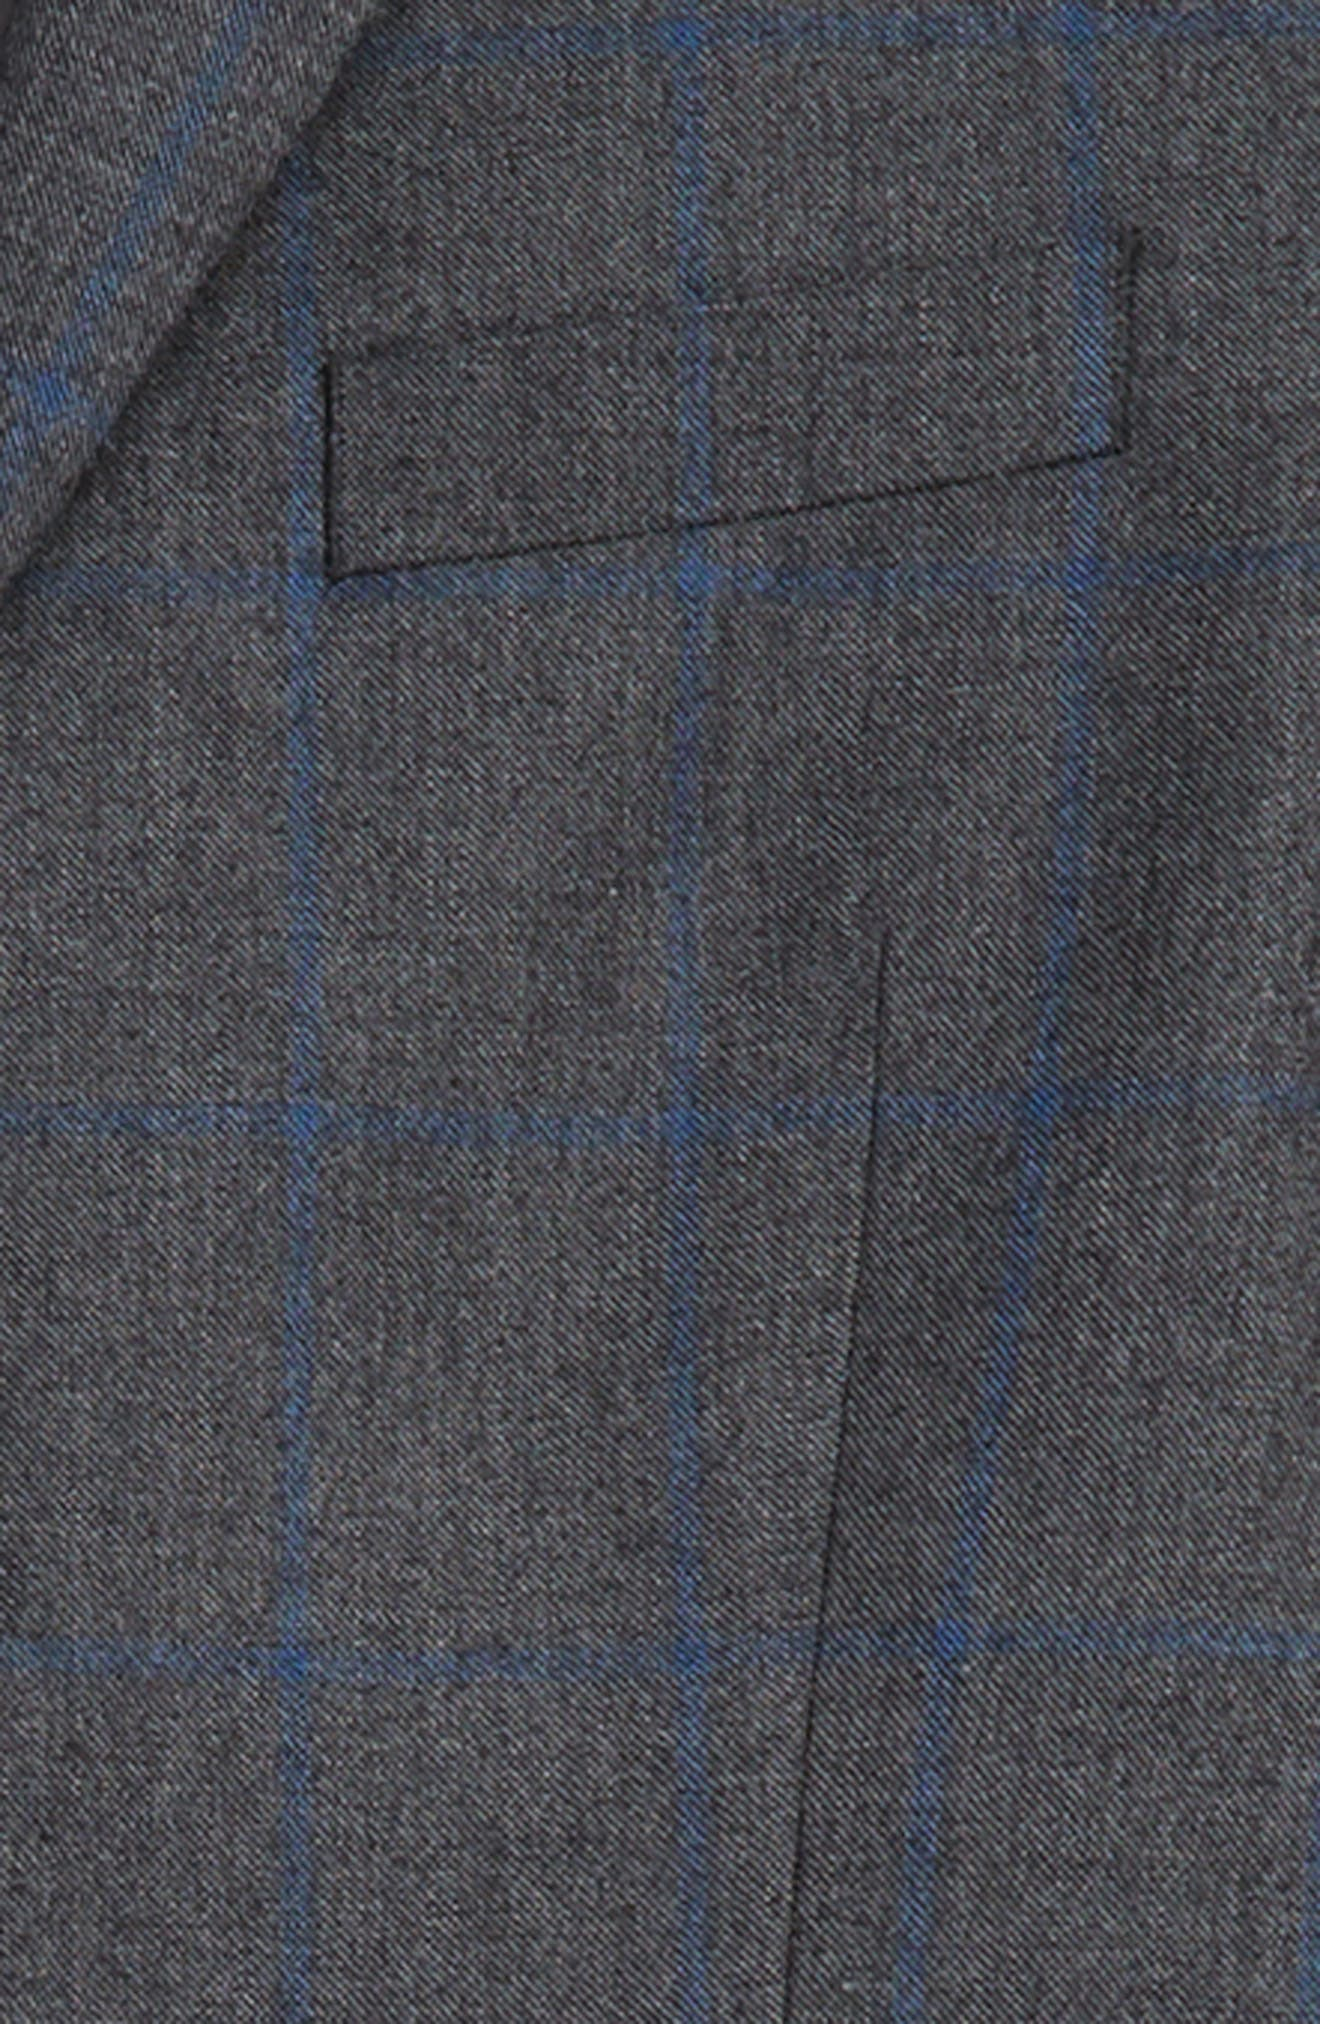 Windowpane Check Wool Suit,                             Alternate thumbnail 2, color,                             GREY/ BLUE